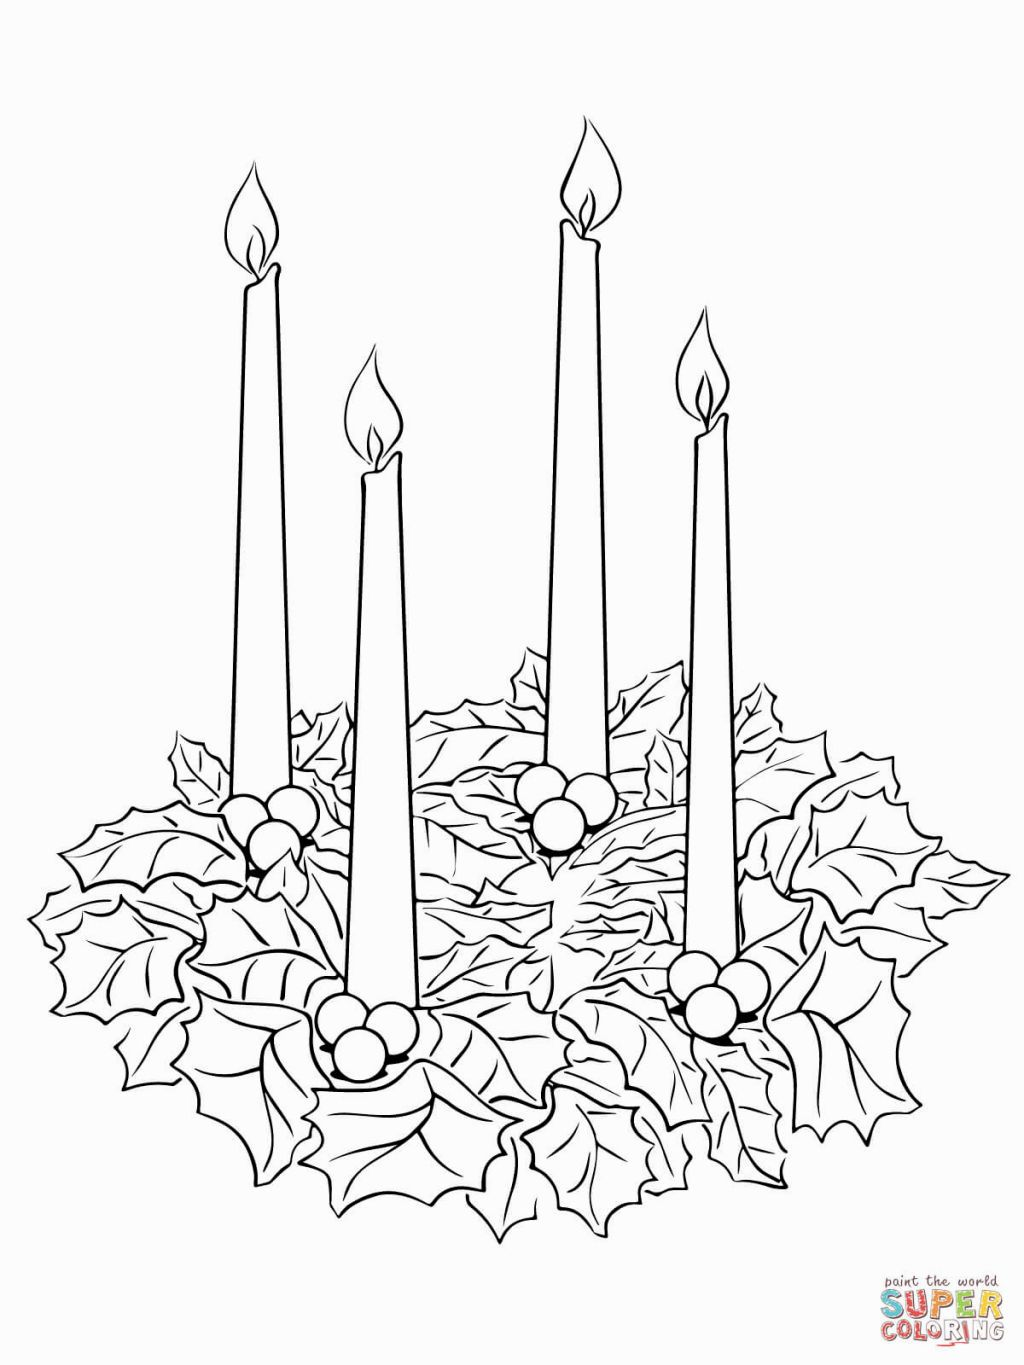 Advent Wreath Coloring Sheet Picture Good Jpg 1024 1365 Advent Coloring Christmas Coloring Pages Wreath Printable